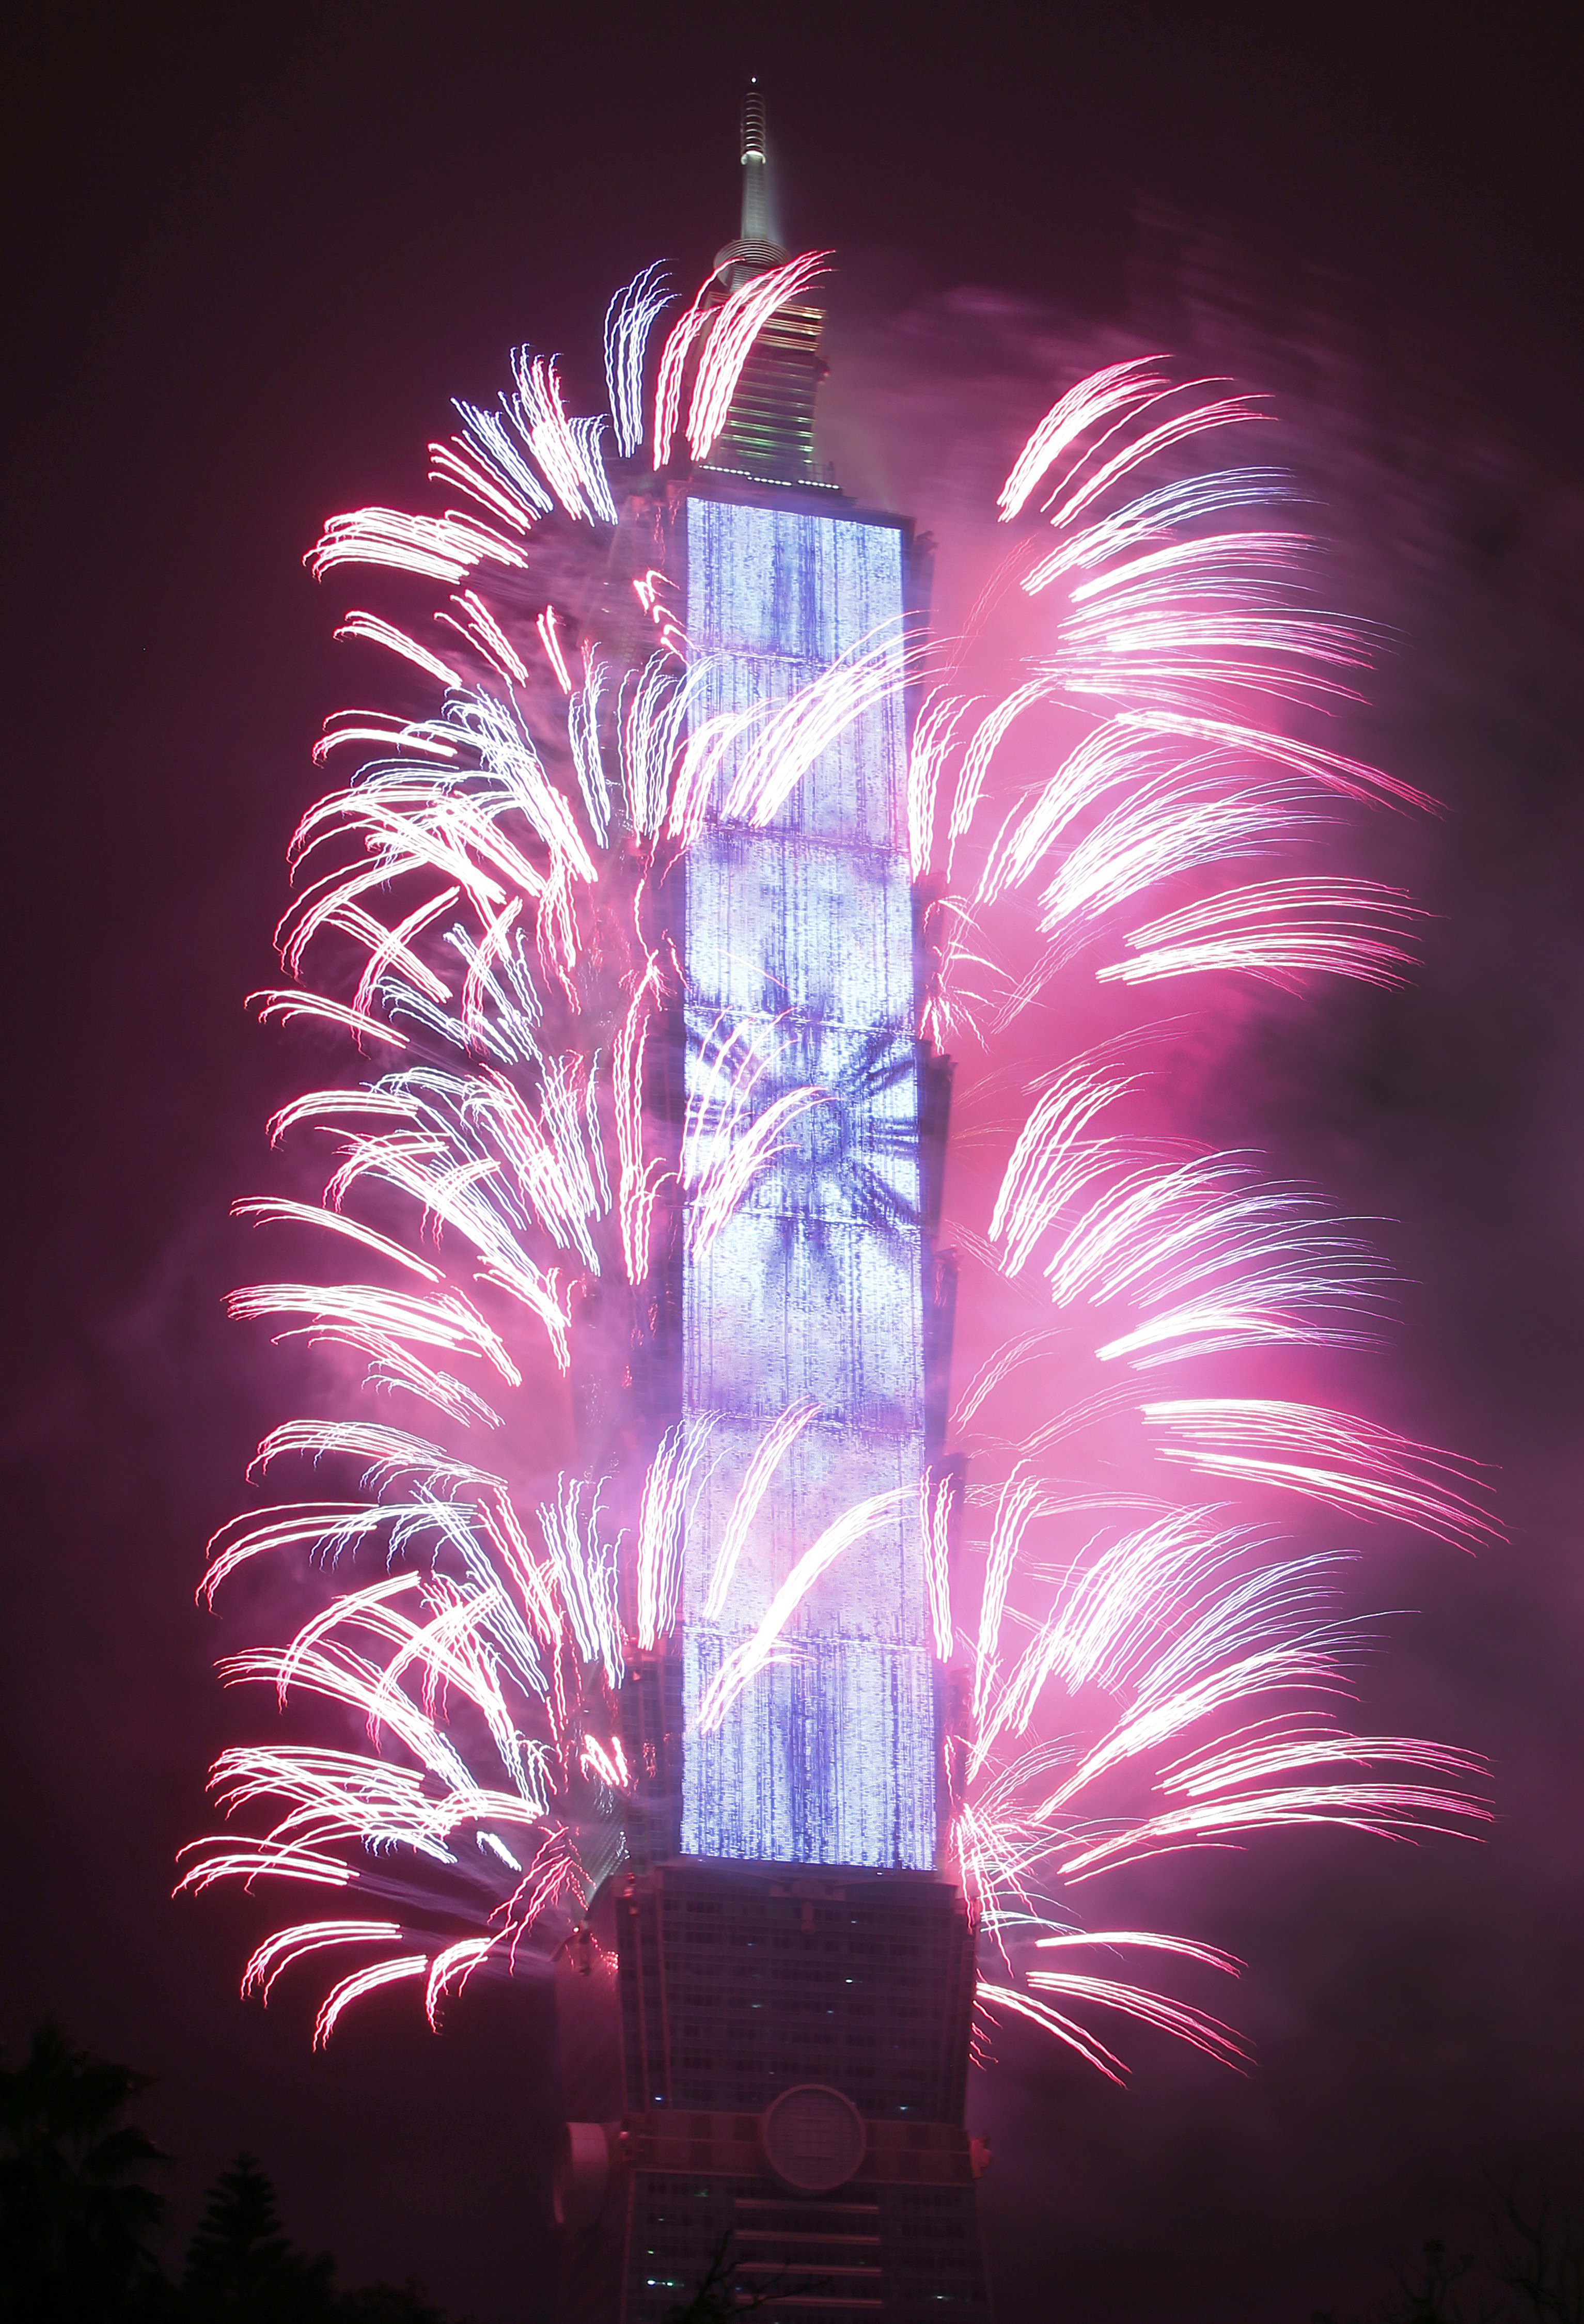 <div class='meta'><div class='origin-logo' data-origin='AP'></div><span class='caption-text' data-credit='AP'>Fireworks explode from the Taipei 101 building during the New Year's celebrations in Taipei, Taiwan, Monday, Jan. 1, 2018. (AP Photo/Chiang Ying-ying)</span></div>